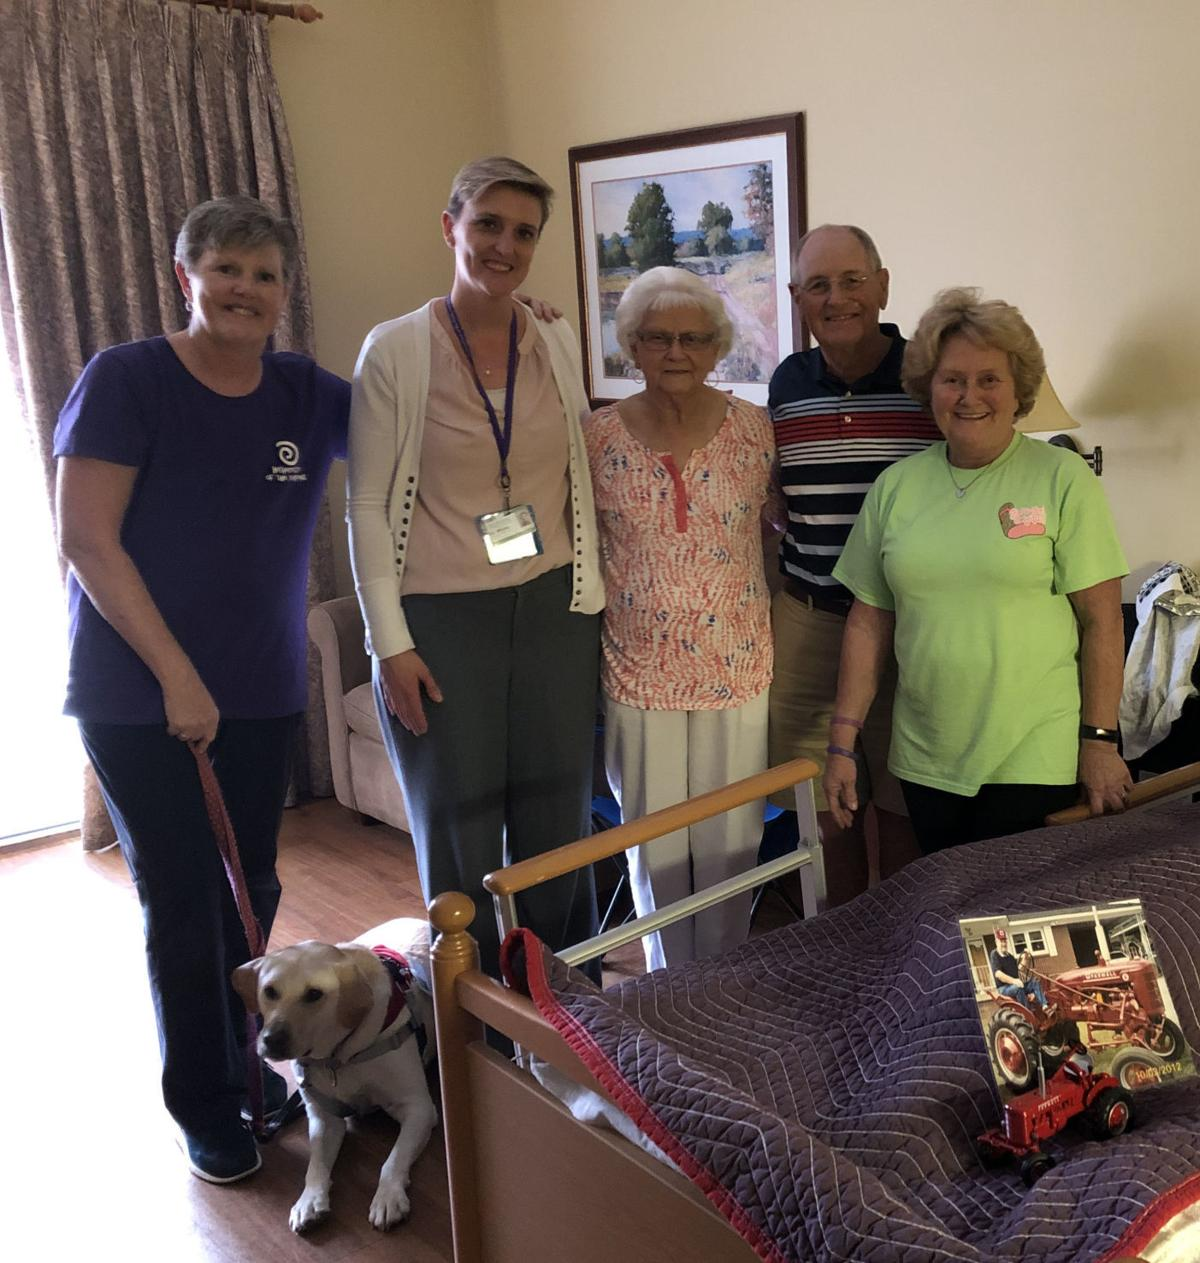 Touching gesture from Hospice and Palliative Care of the Piedmont volunteer